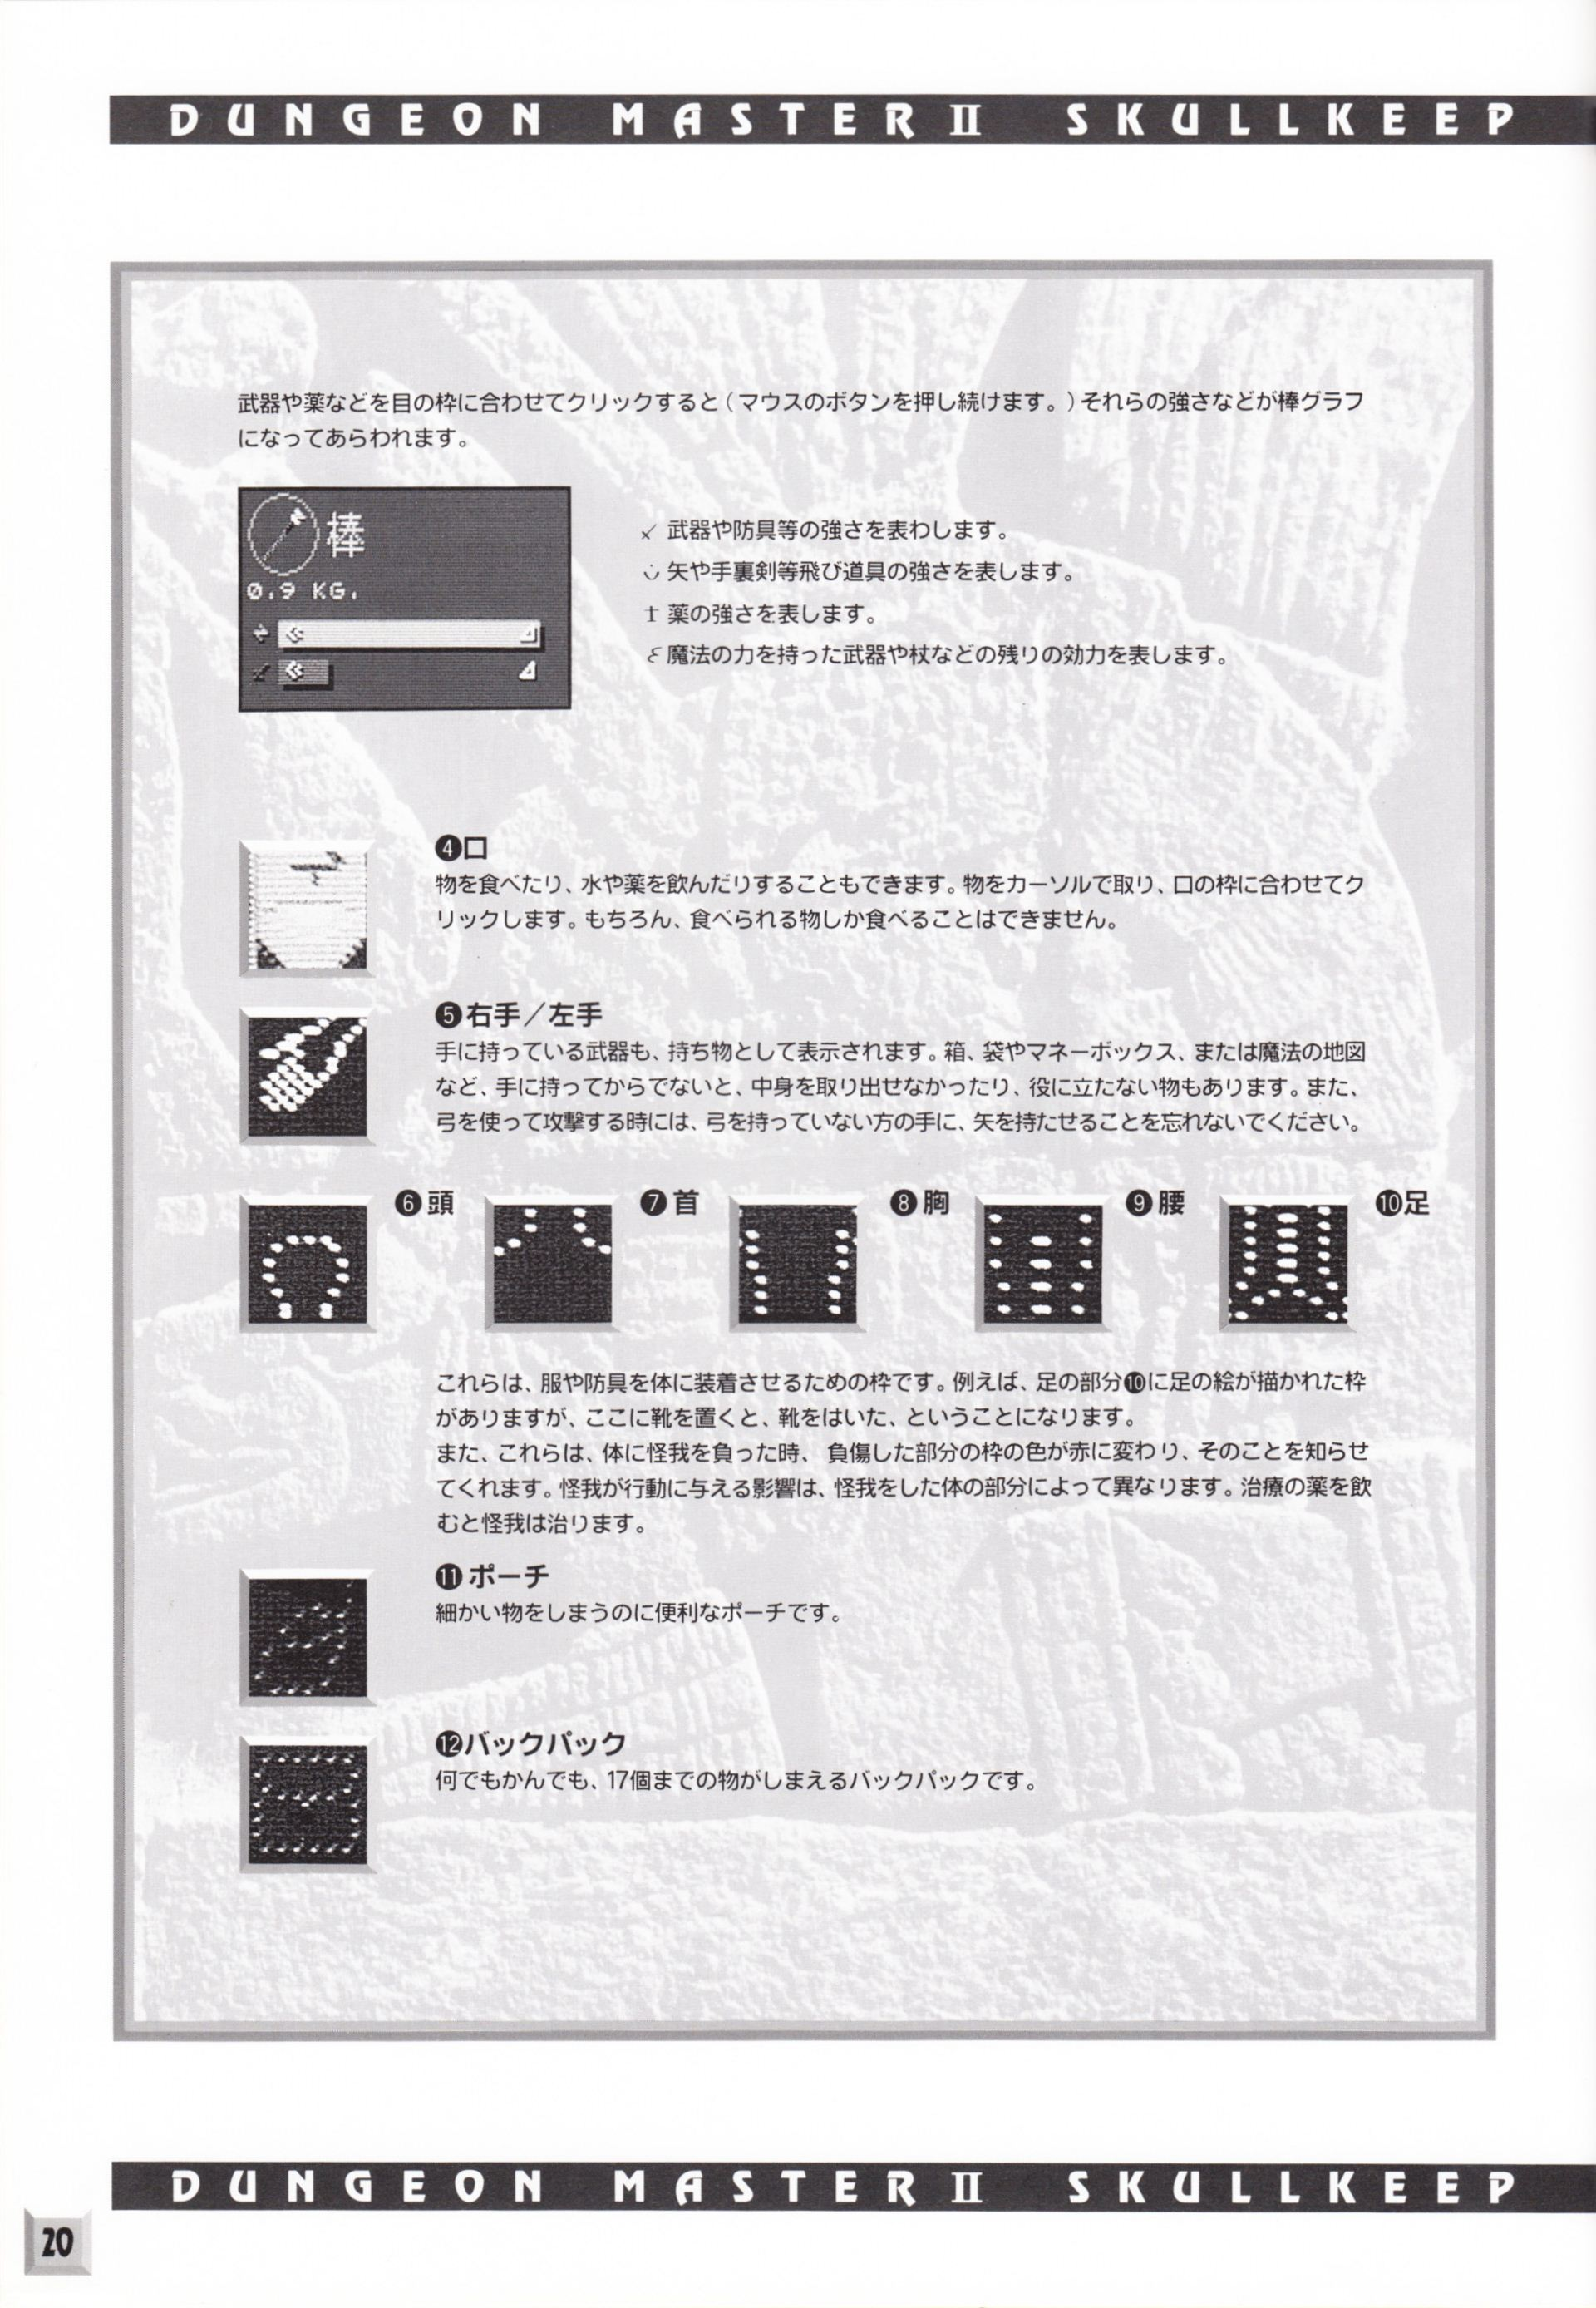 Game - Dungeon Master II - JP - PC-9801 - 3.5-inch - An Operation Manual - Page 022 - Scan